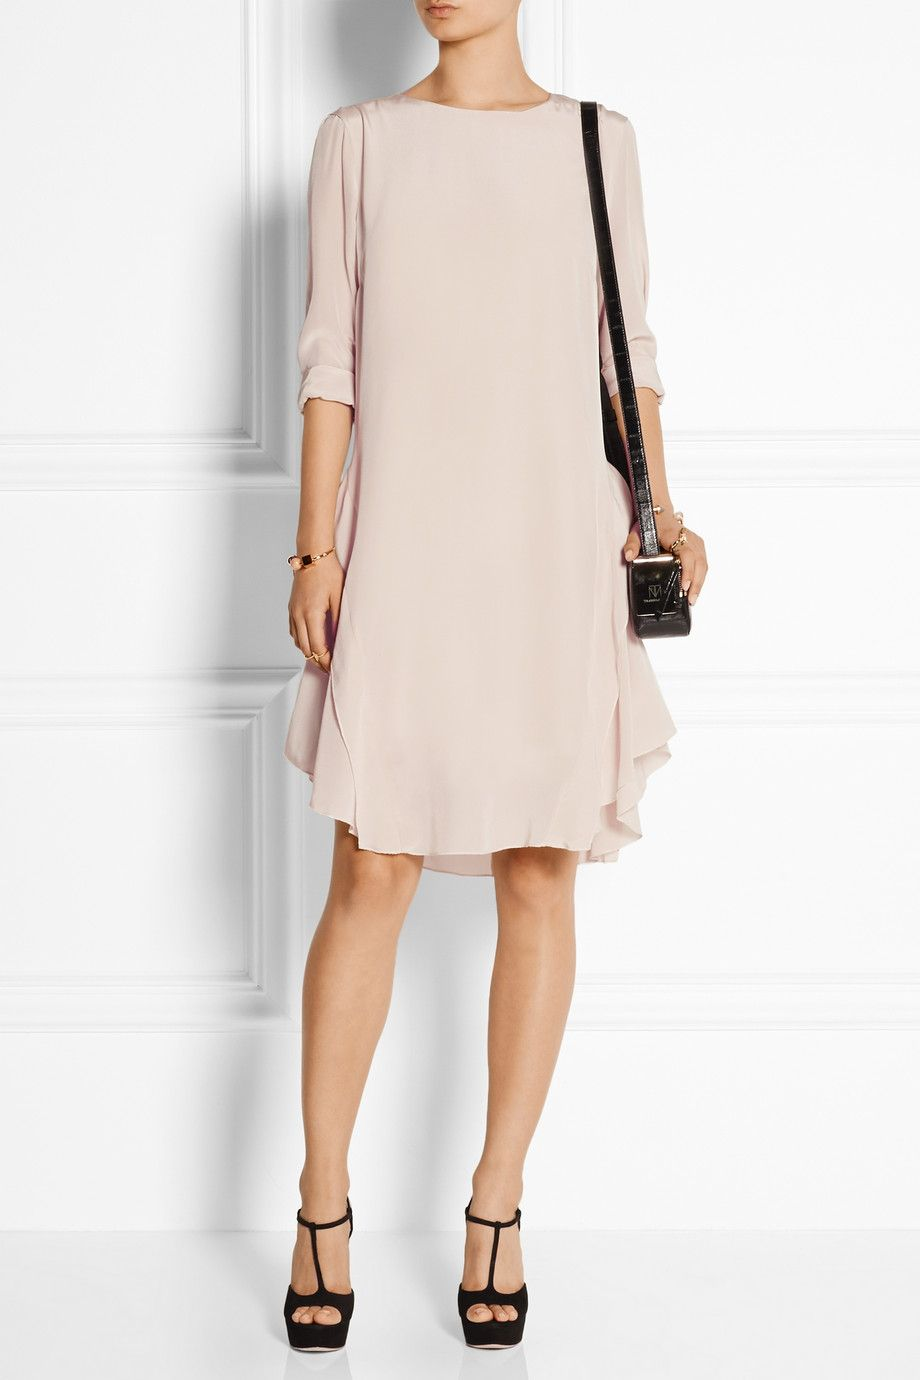 Low Price Fee Shipping Cheap Price Short dress See By Chloé Cheap Sale Official Site ctfSLFOe